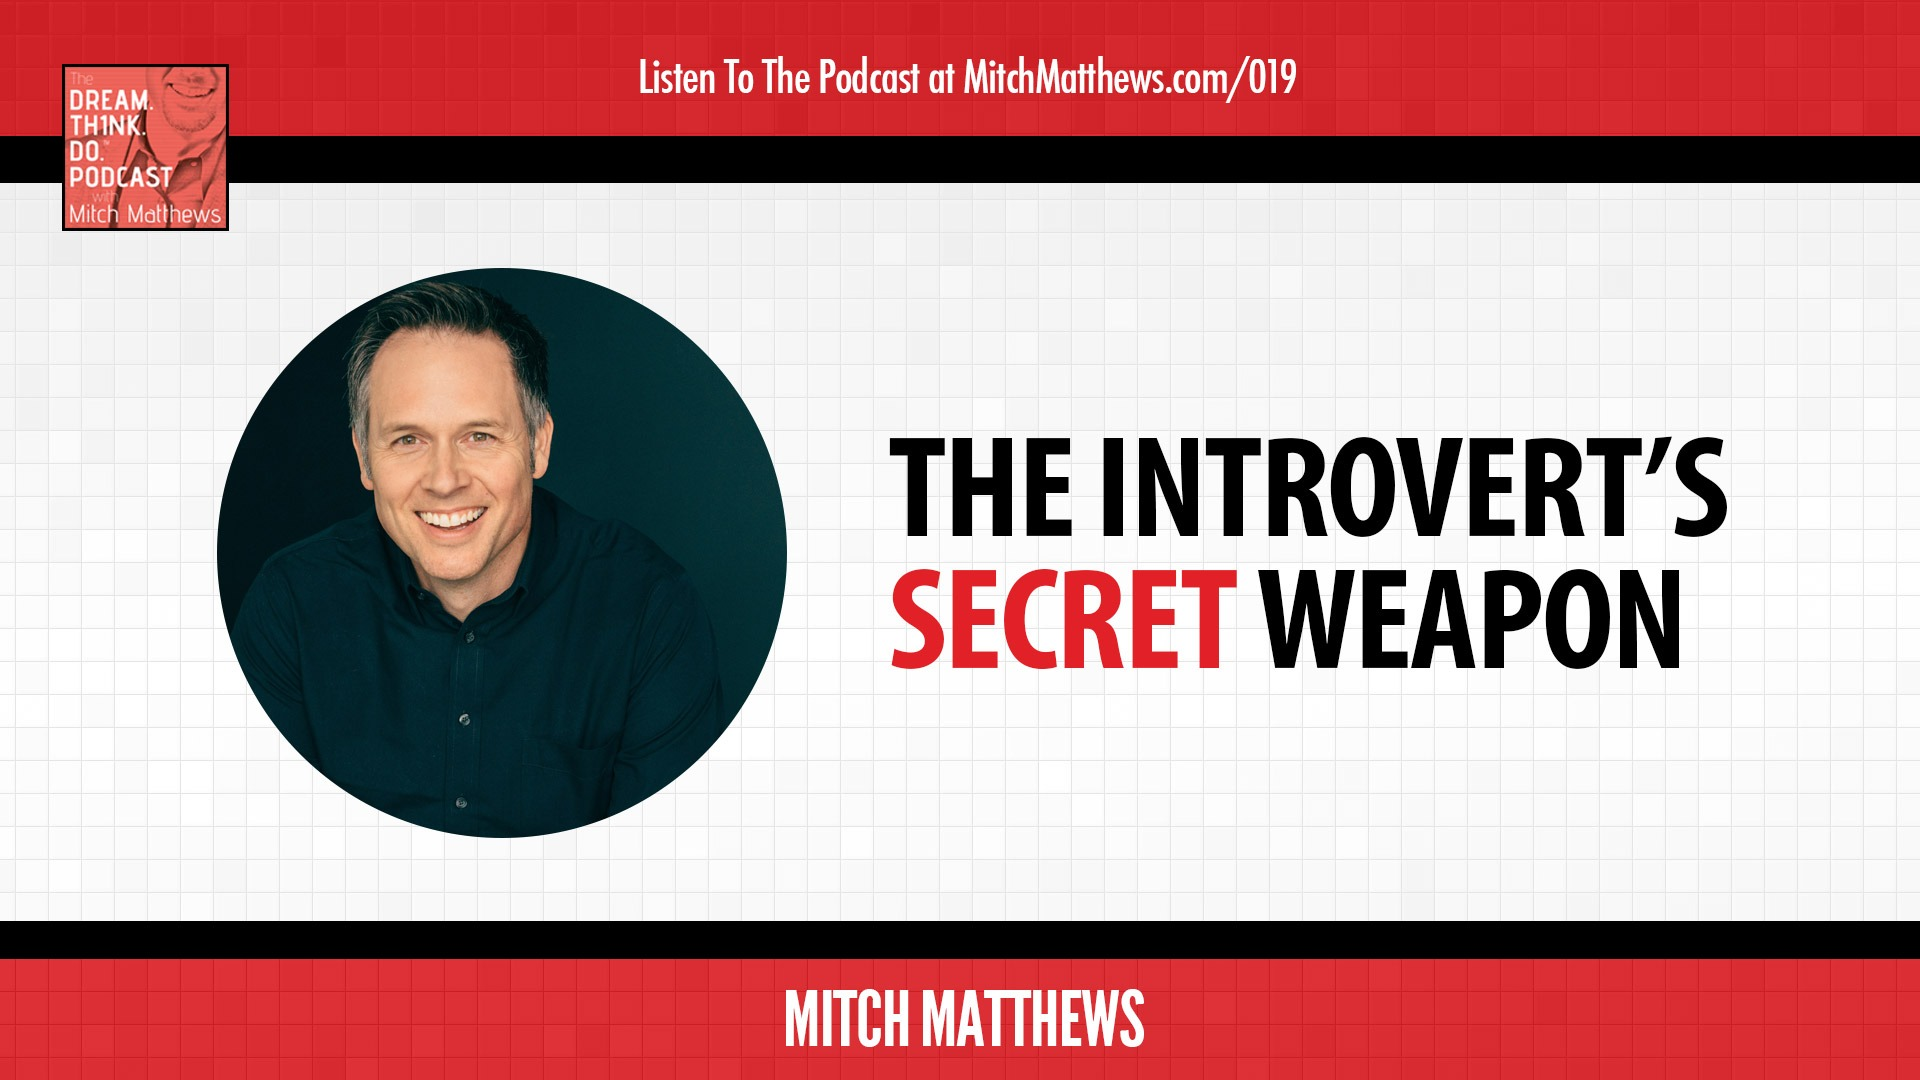 The Introvert's Secret Weapon